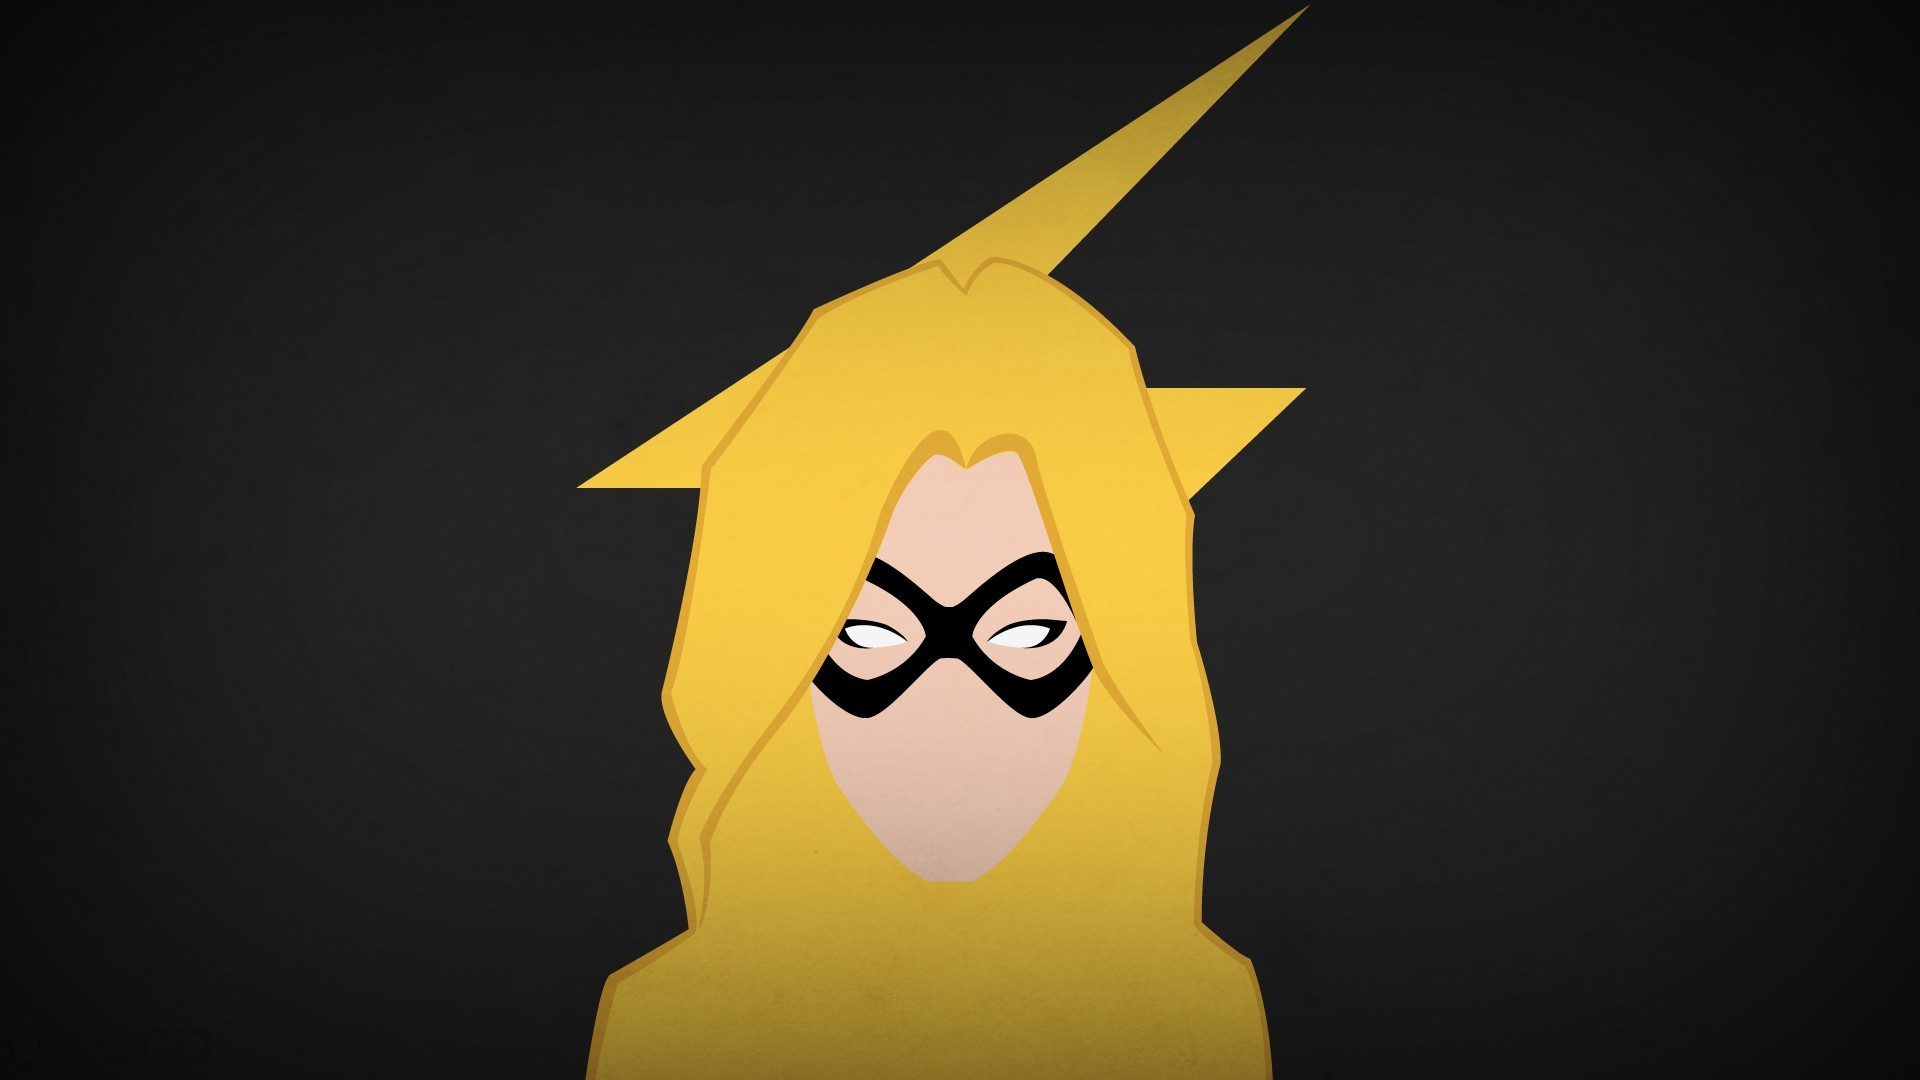 »Wallpapers minimalista superheroes y villanos